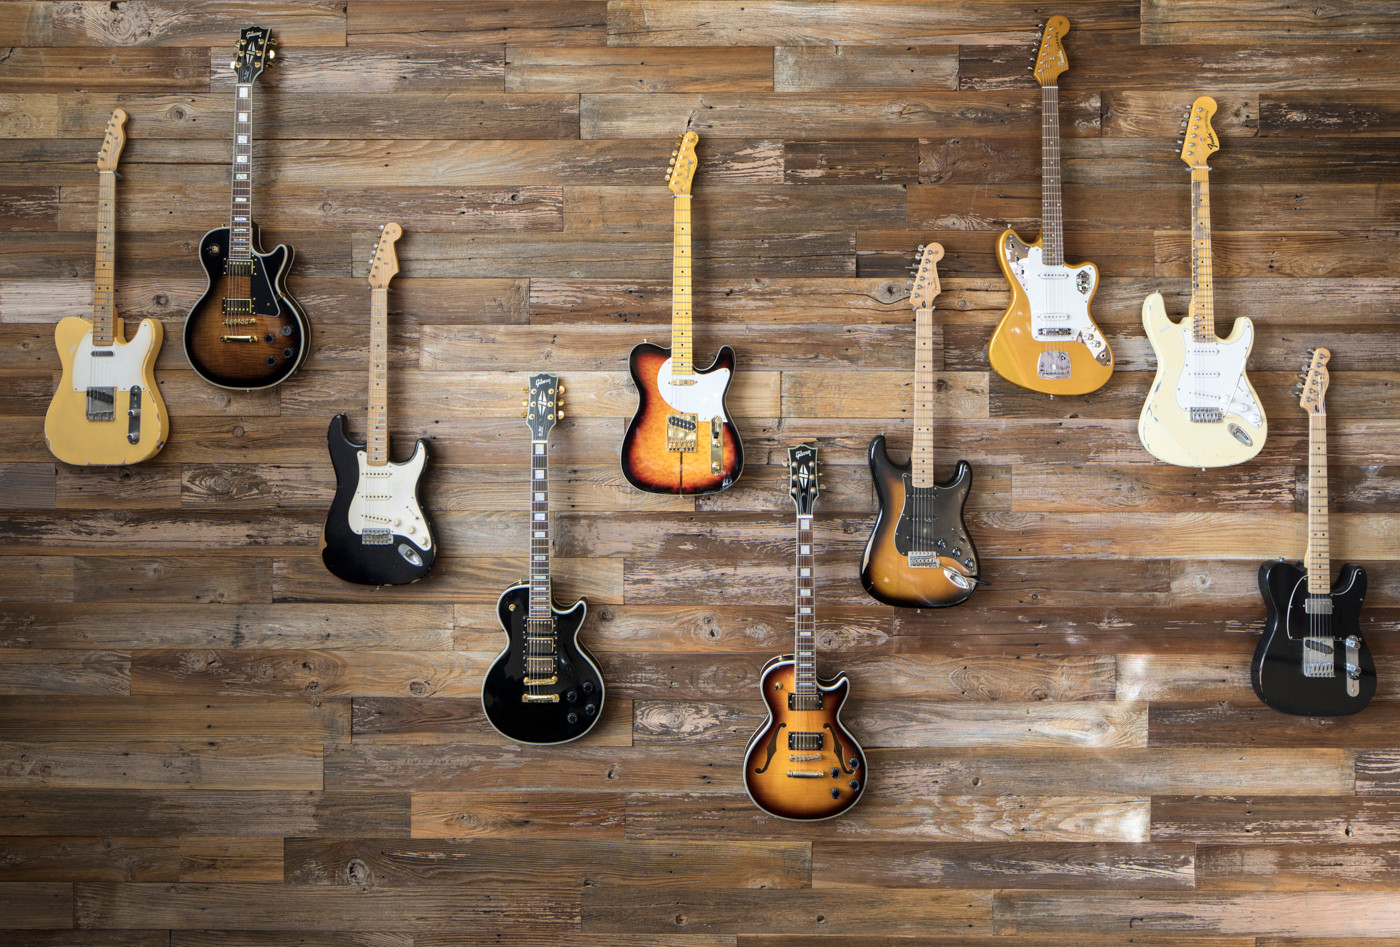 Sand & Stone Guitar Feature Wall